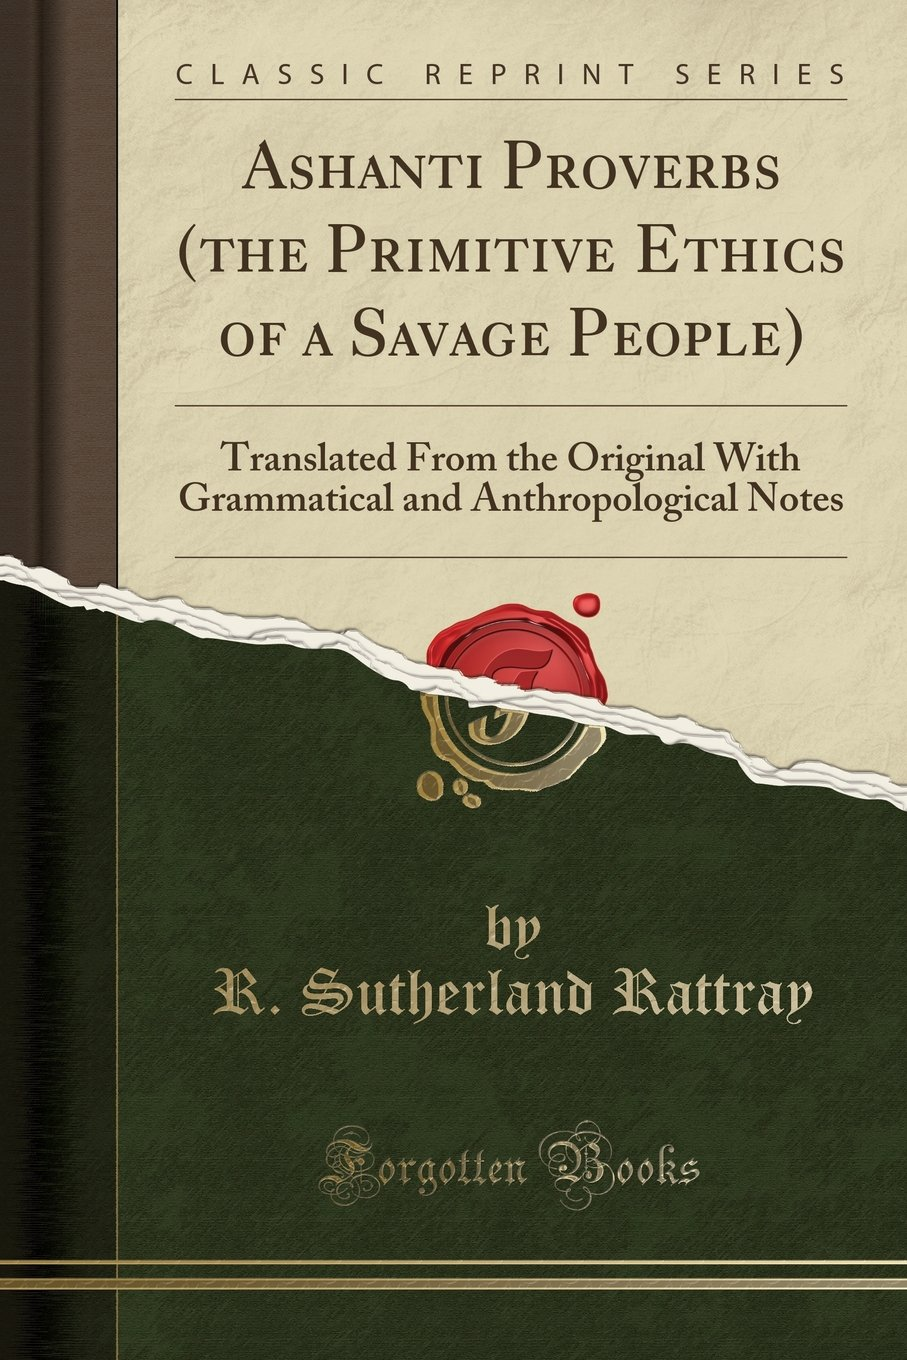 Download Ashanti Proverbs (the Primitive Ethics of a Savage People): Translated From the Original With Grammatical and Anthropological Notes (Classic Reprint) pdf